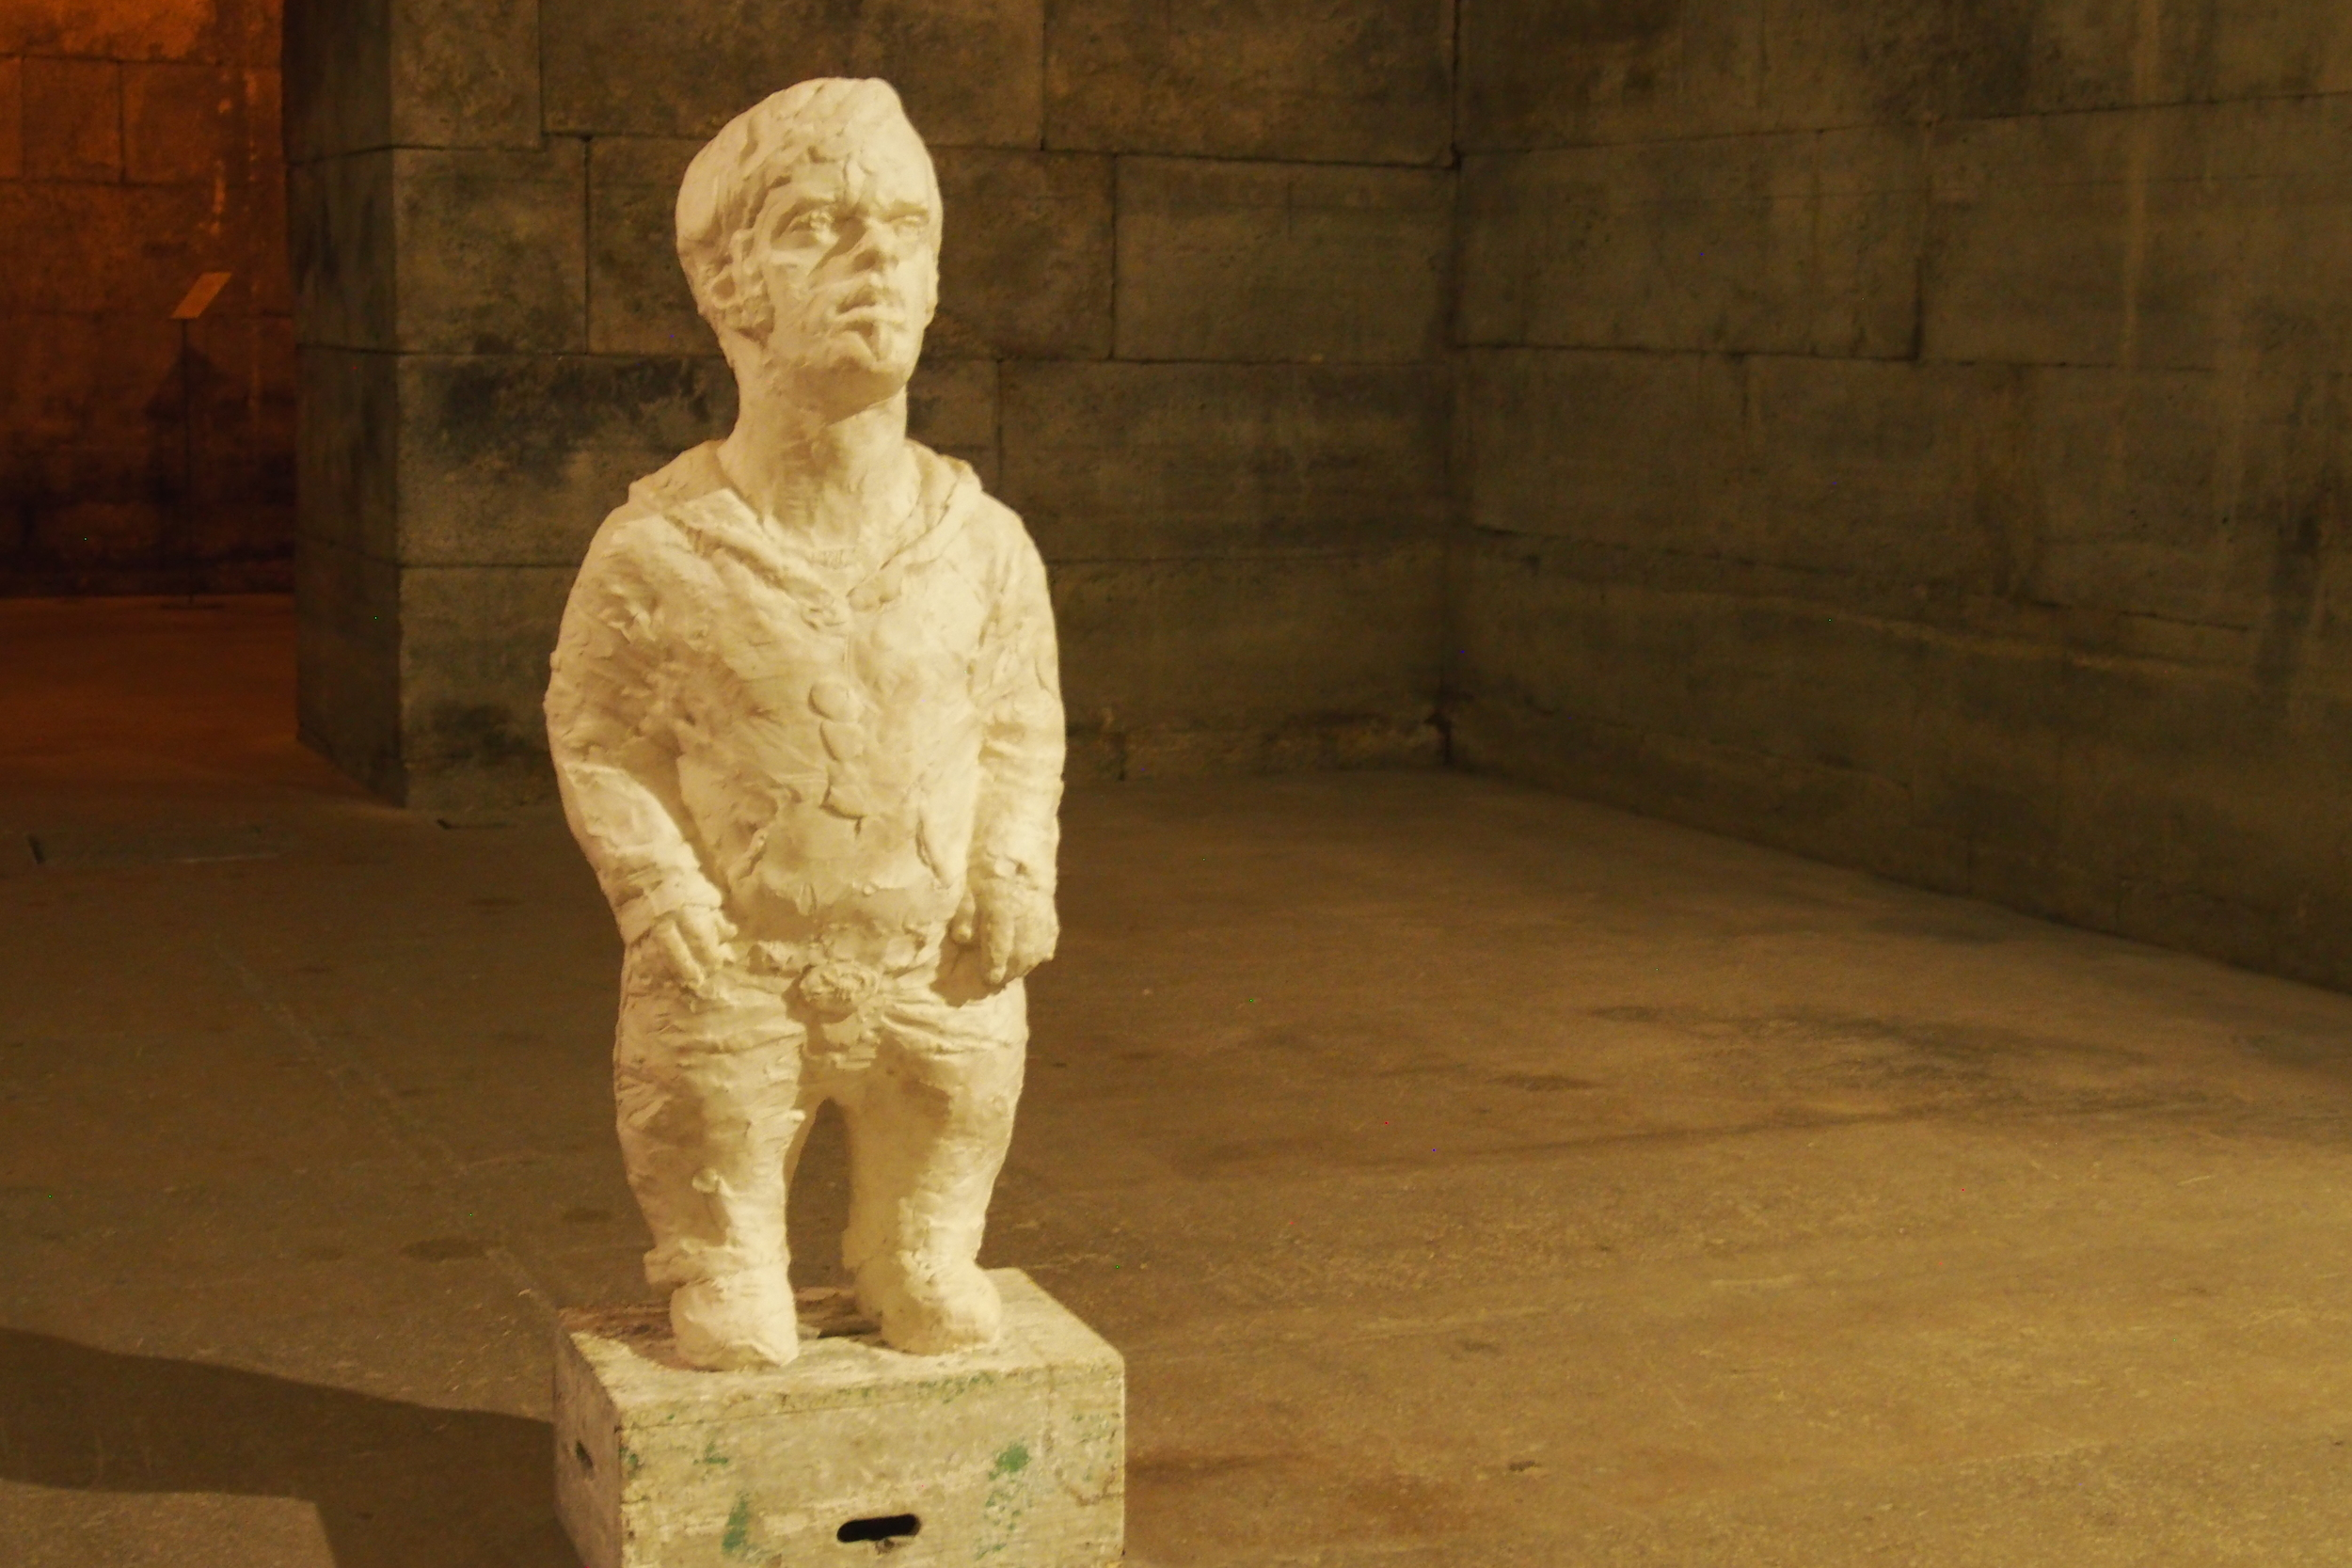 Game of Thrones was filmed in many Croatian sites. We thought we recognized this modern sculpture